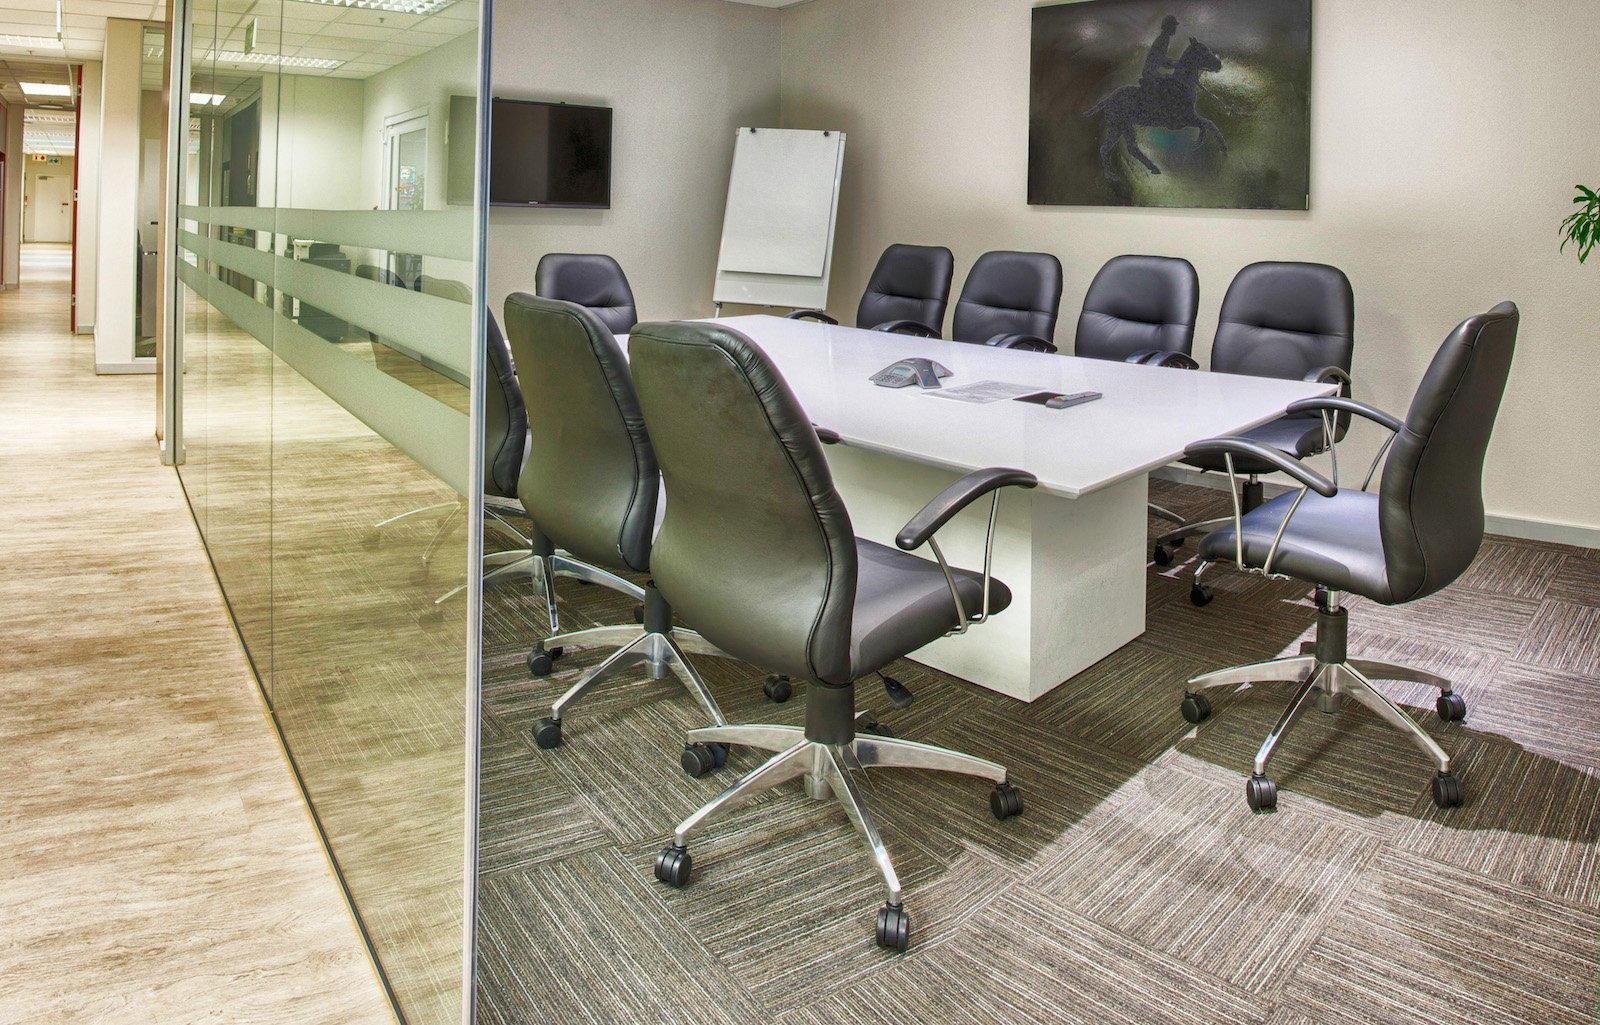 rent office space. Looking To Rent Office Space In 2016?